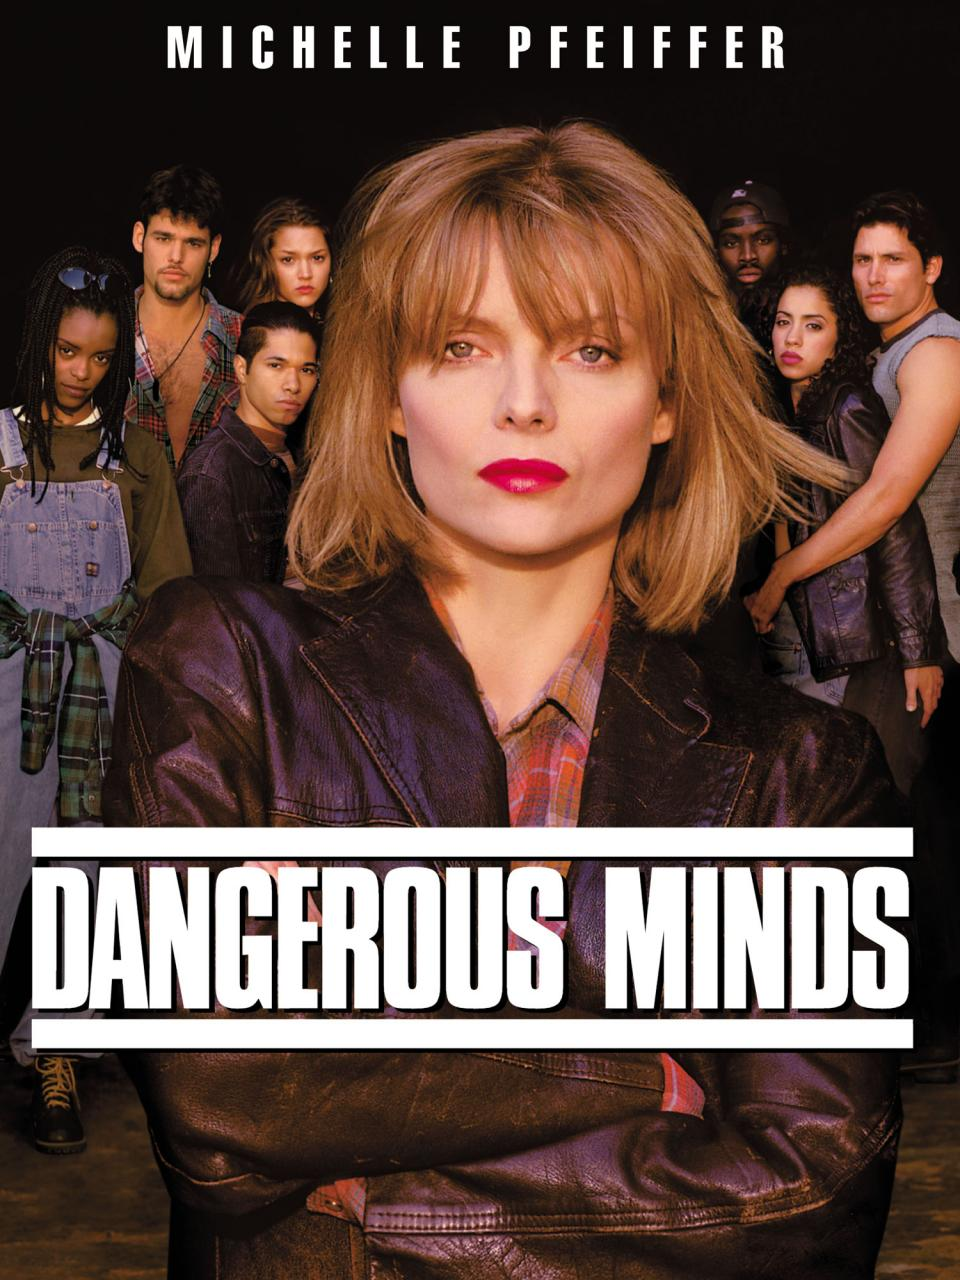 Dangerous-Minds-1995.jpg